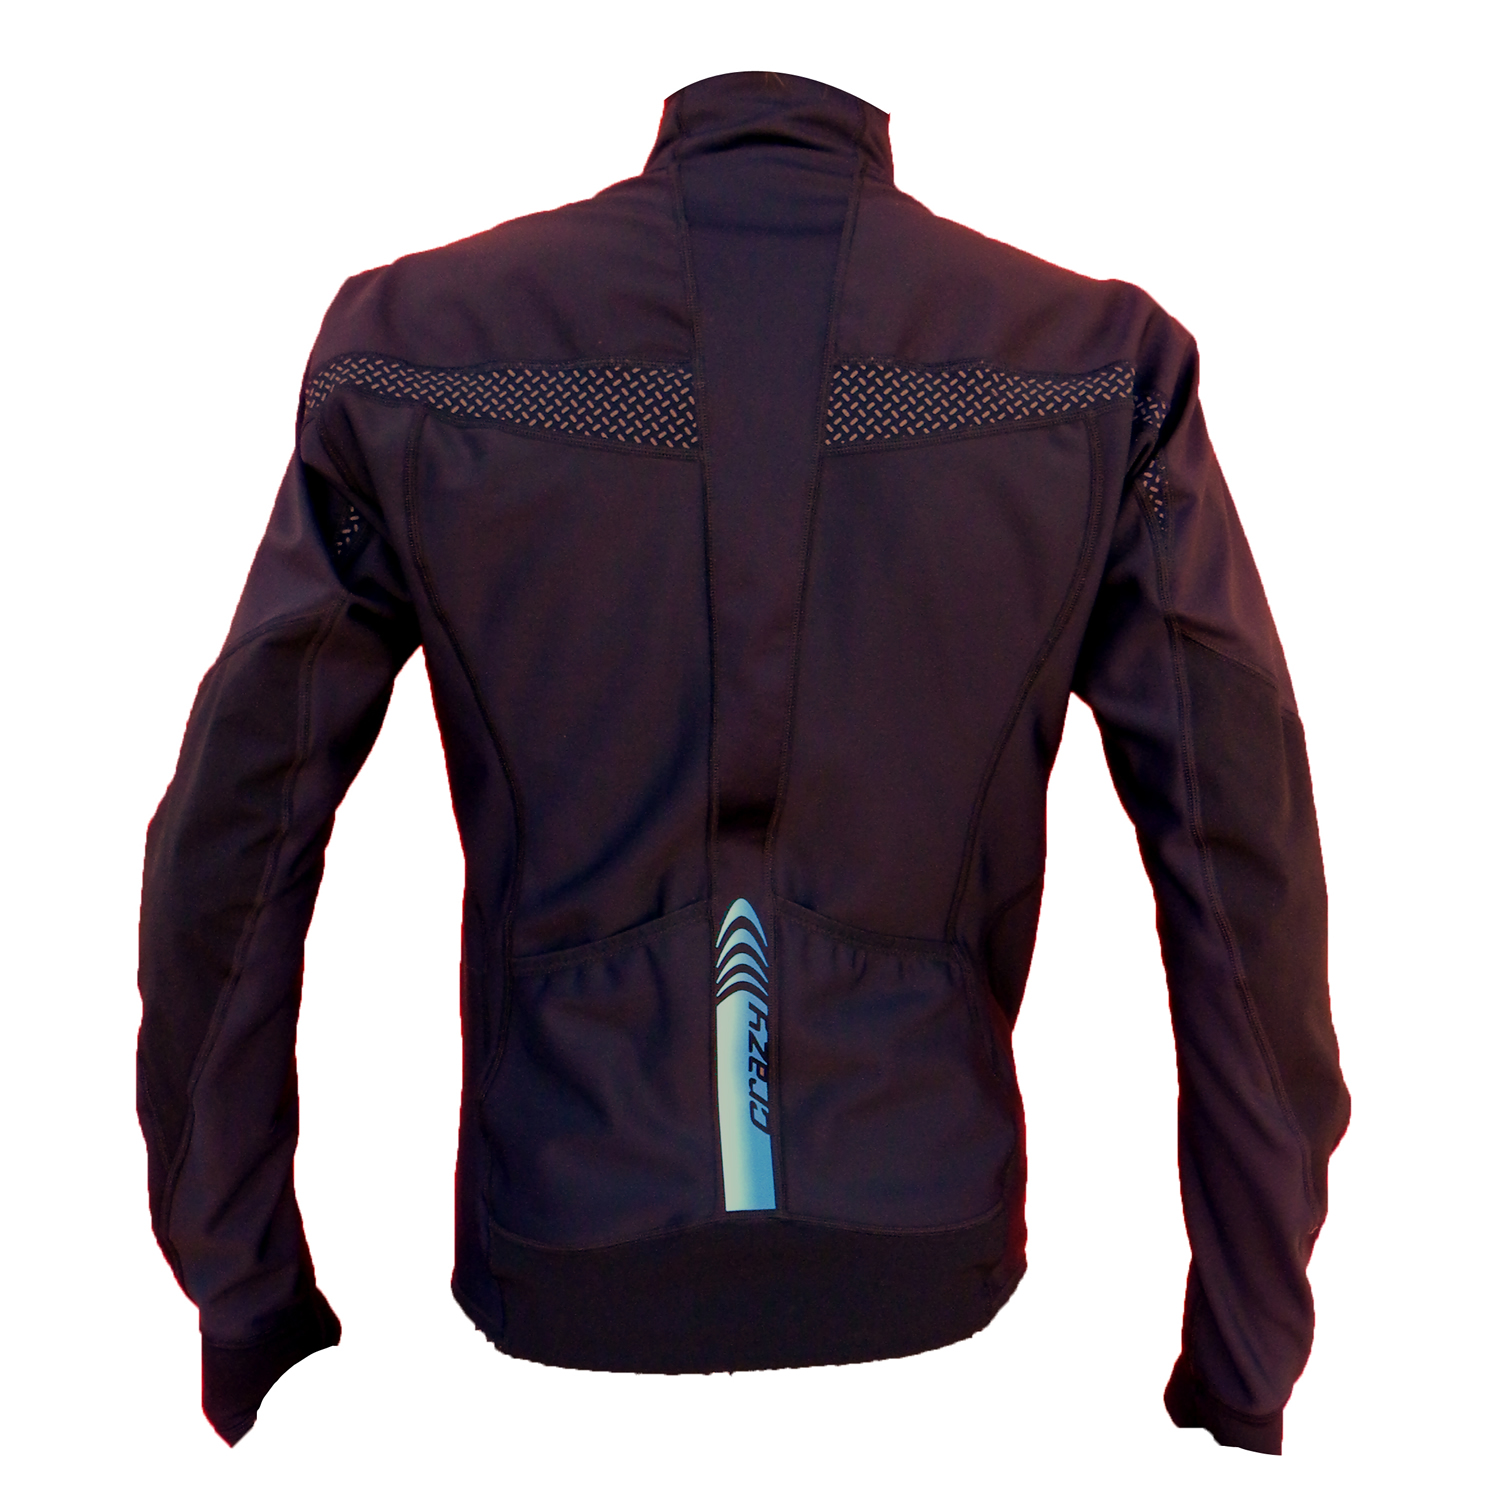 Veste technique Transwind de Crazy Idea